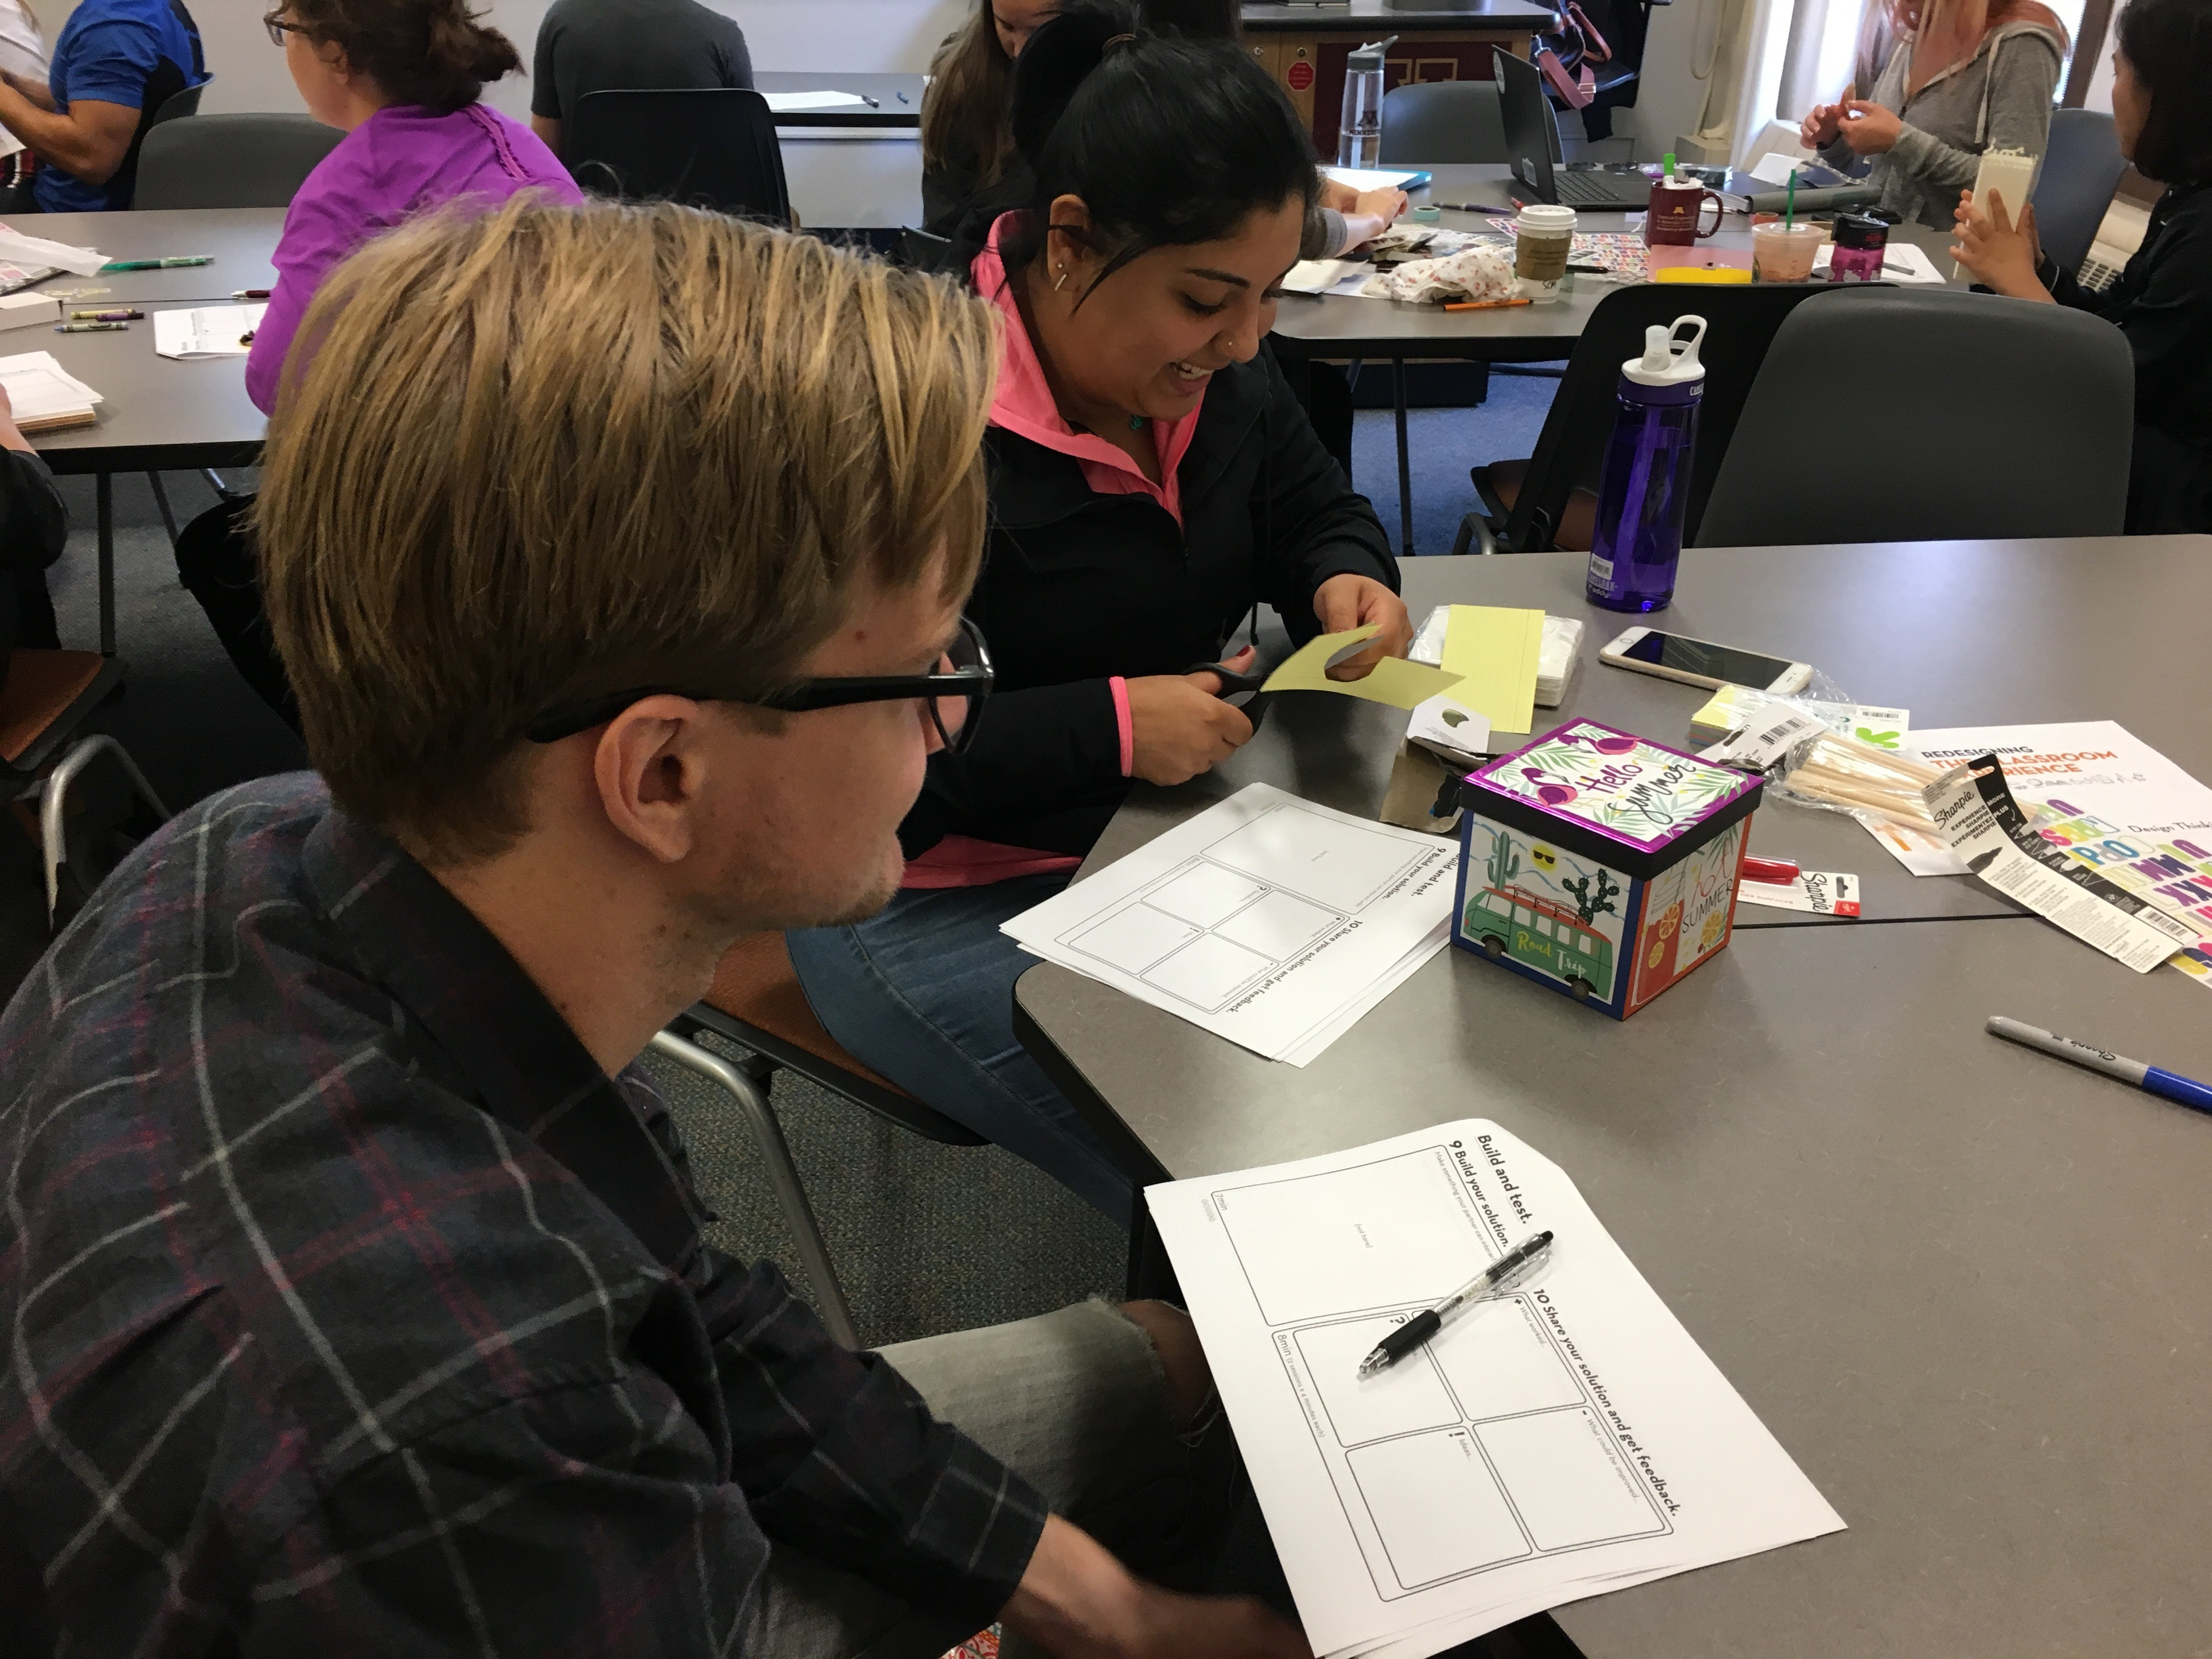 A student building prototypes for their solutions.